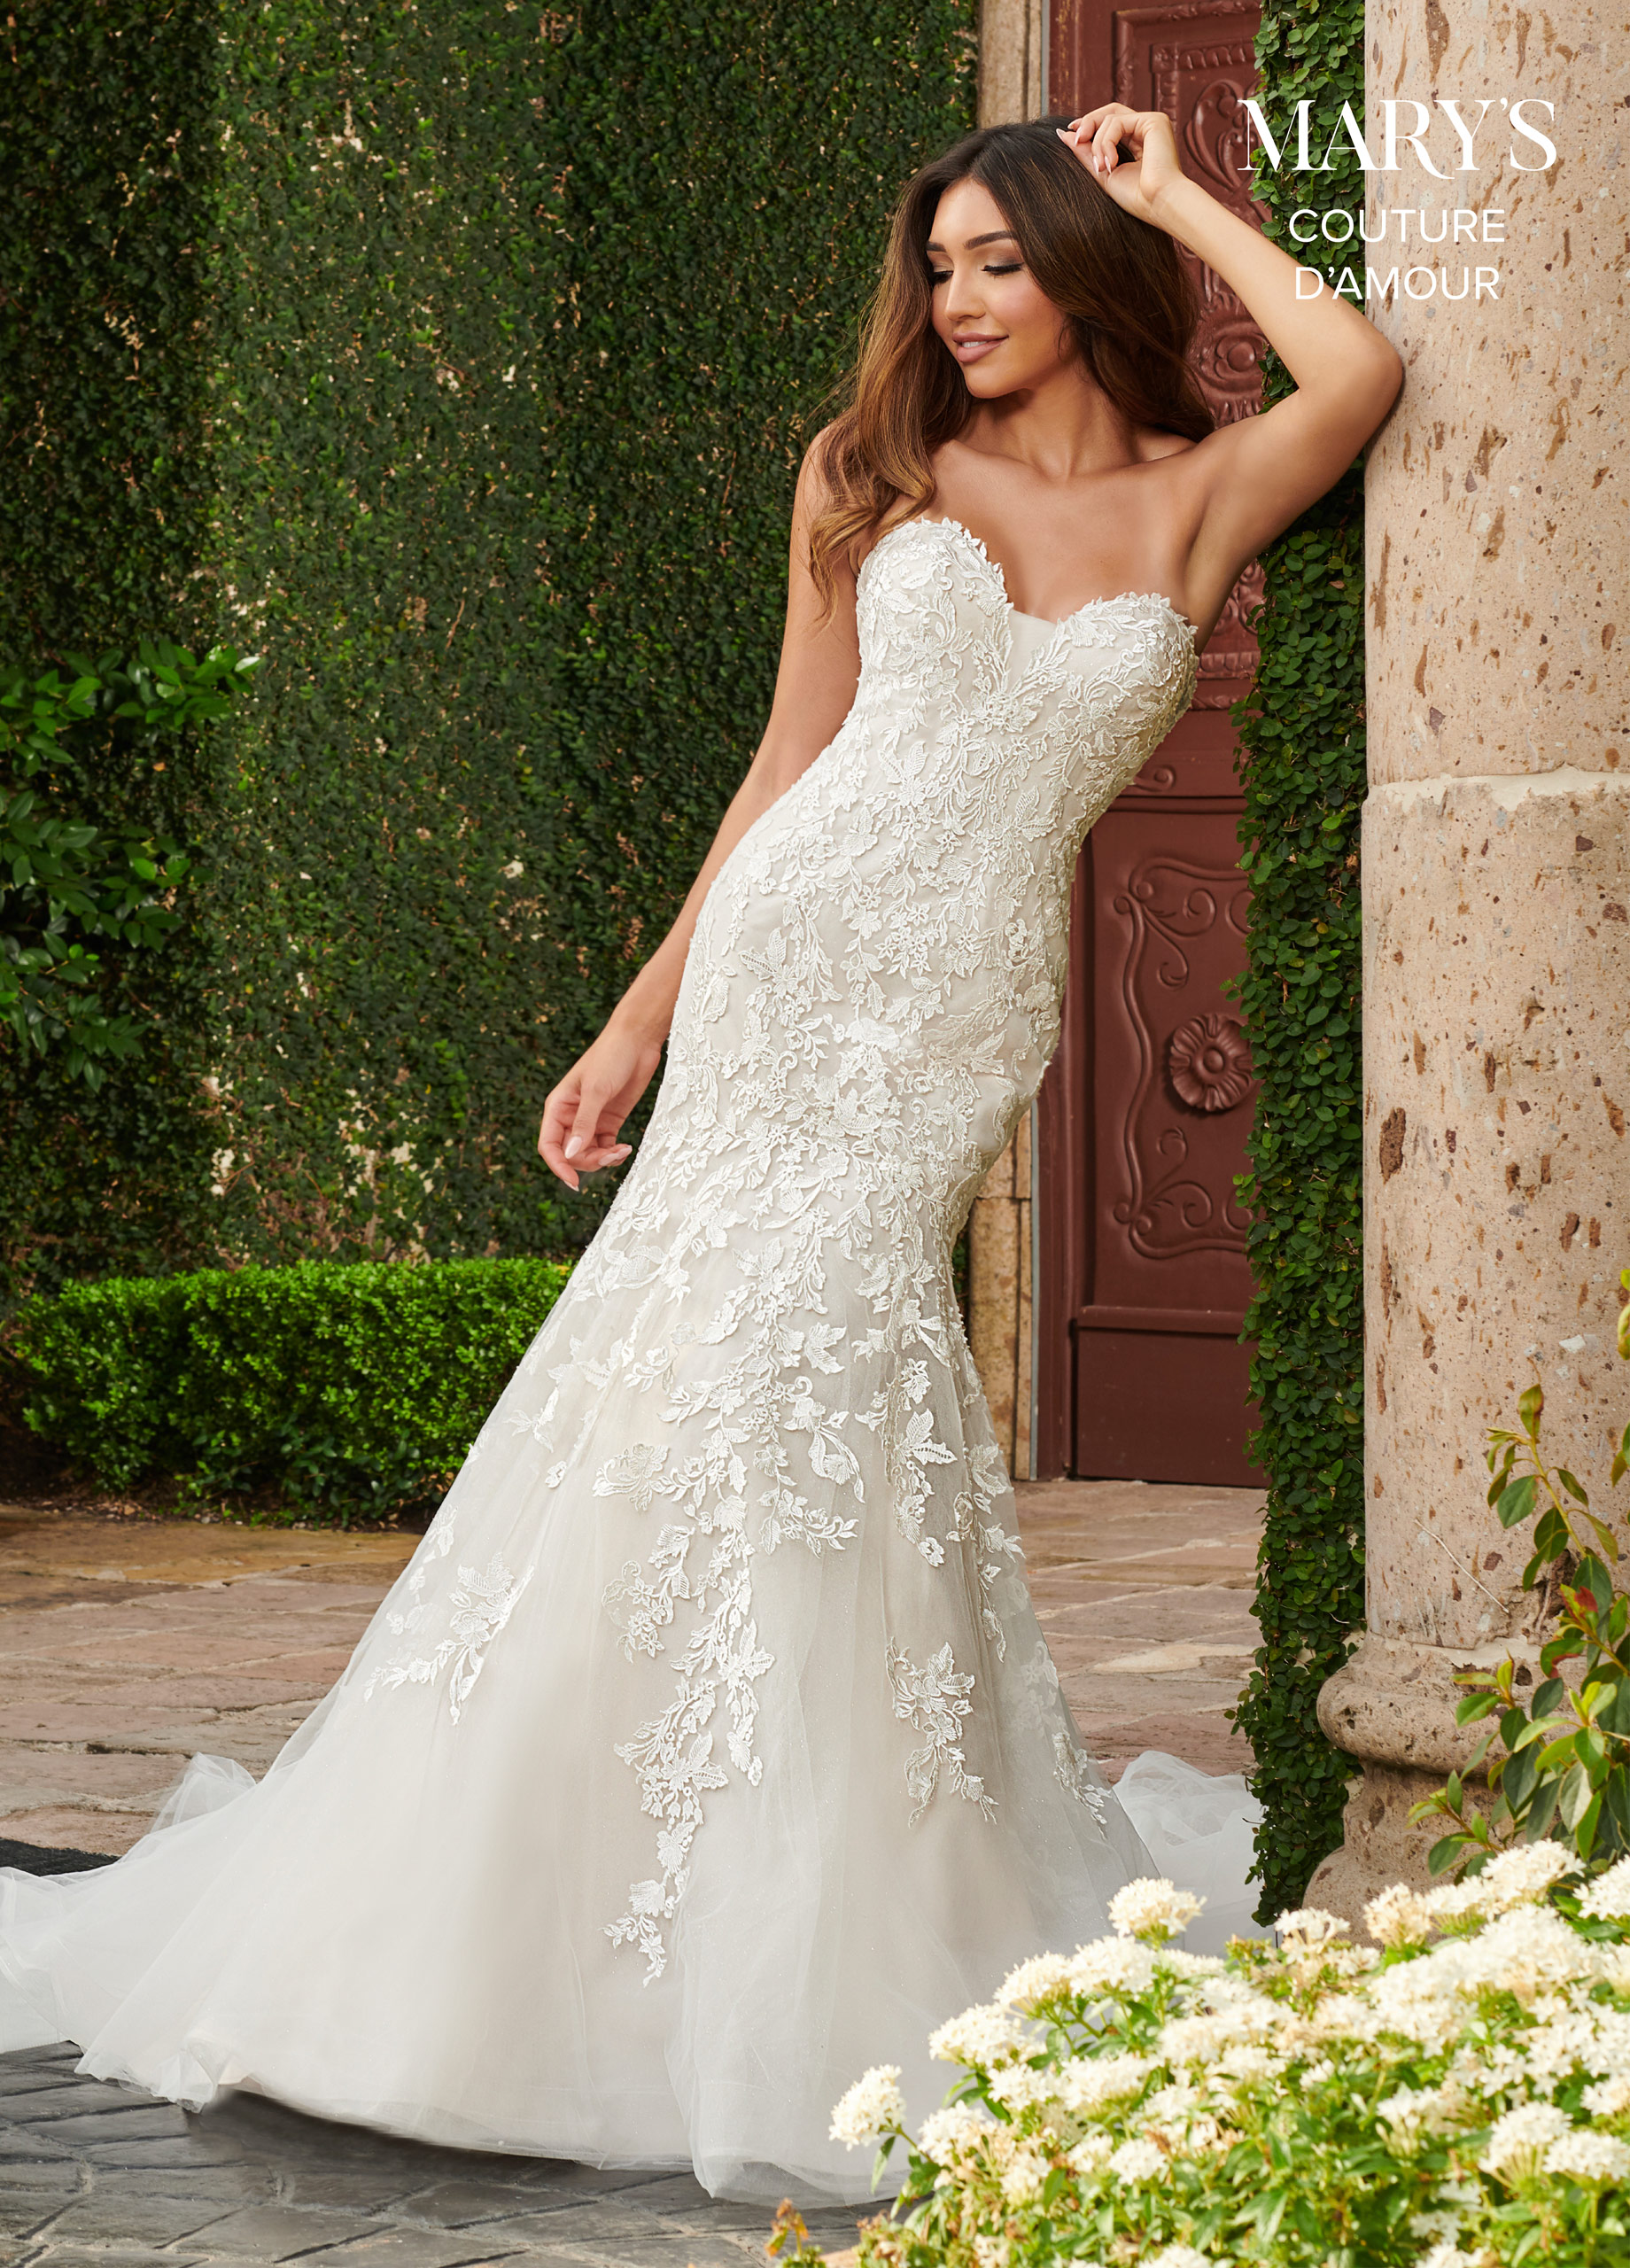 Couture Damour Bridal Dresses | Style - MB4108 in Ivory ...